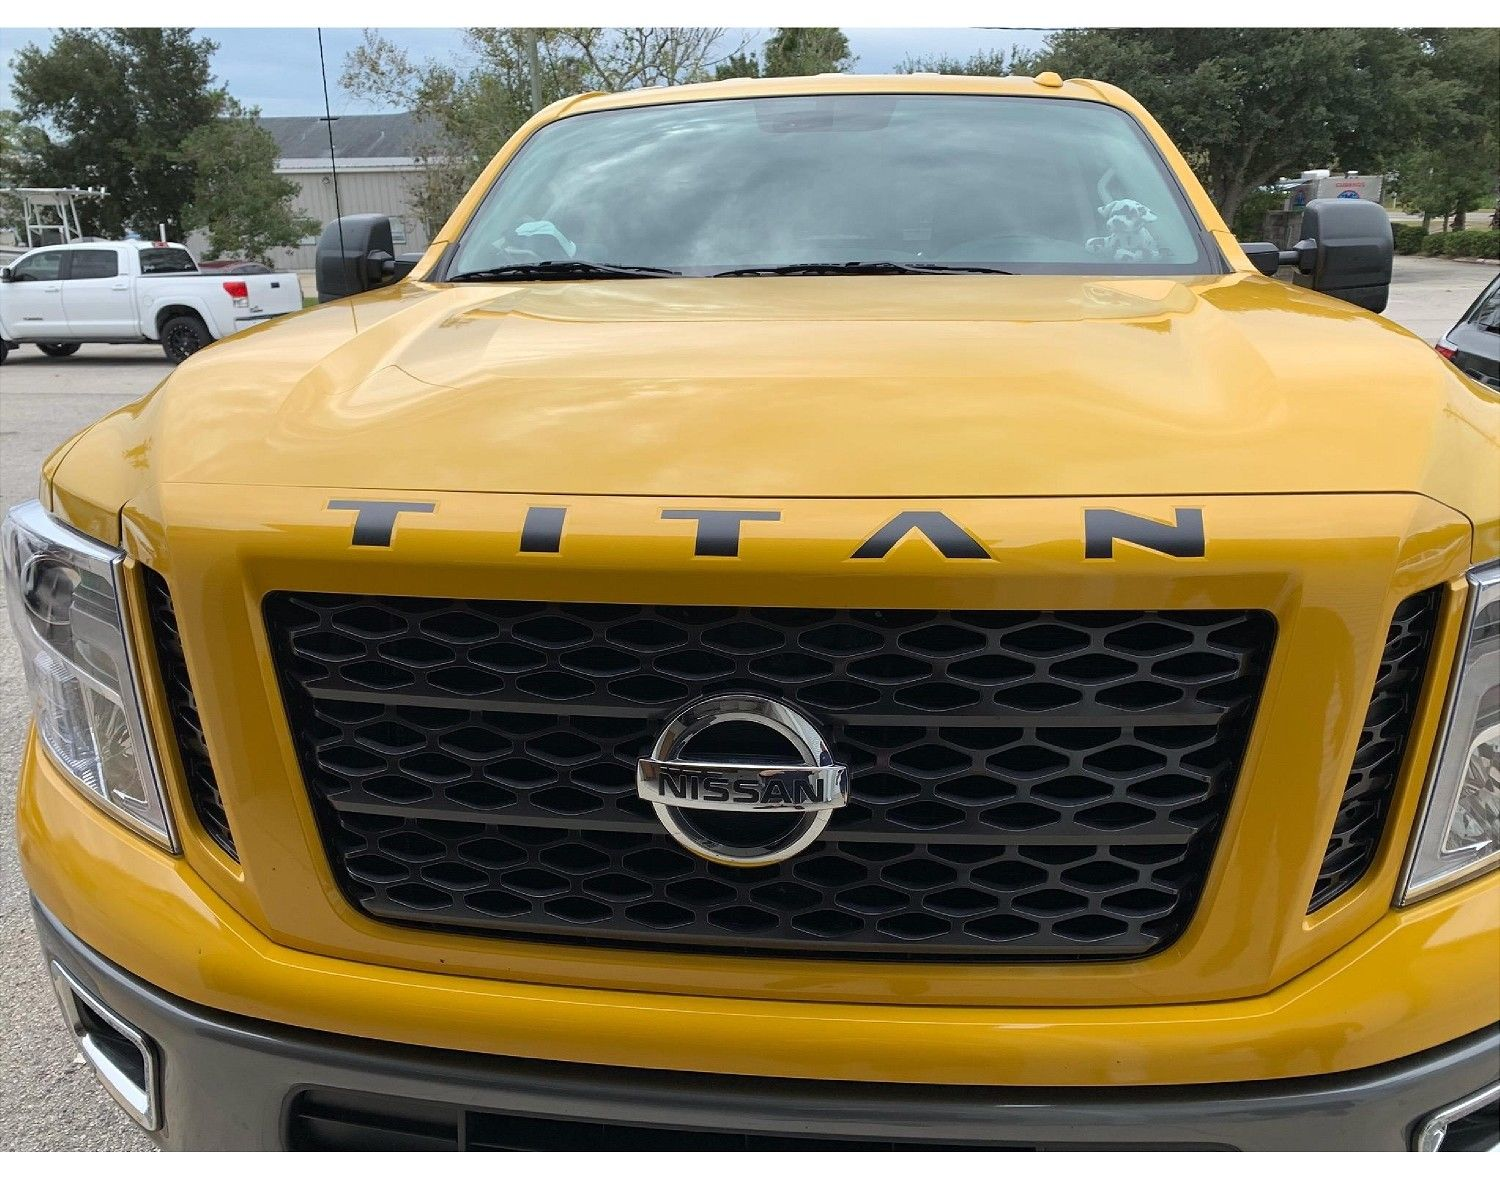 2020-2021 Nissan Titan Front Grill Letters